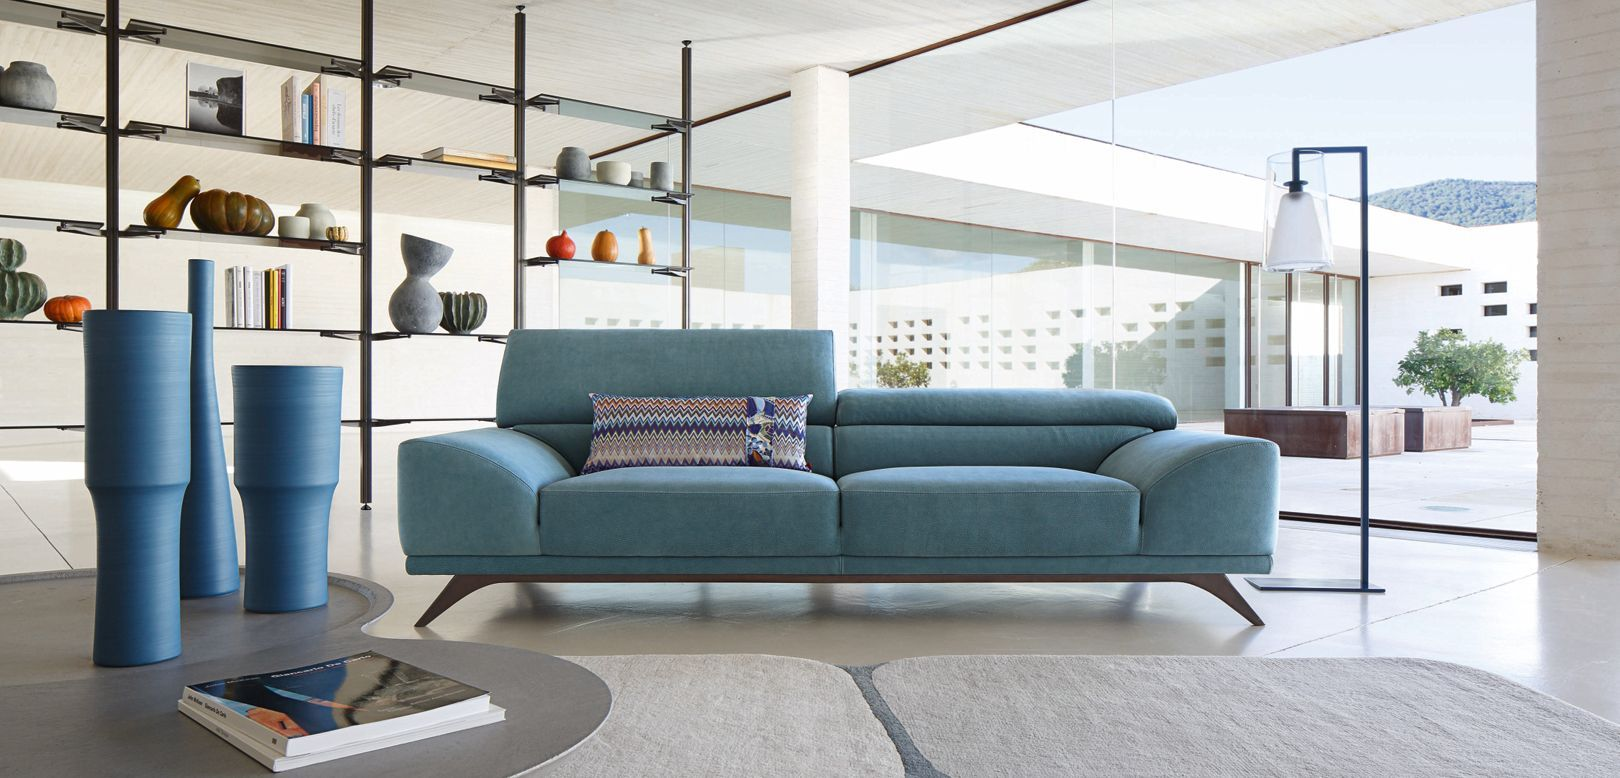 Favori This sofa looks amazing! Roche Bobois - Huge three-seats AZUR  FW36